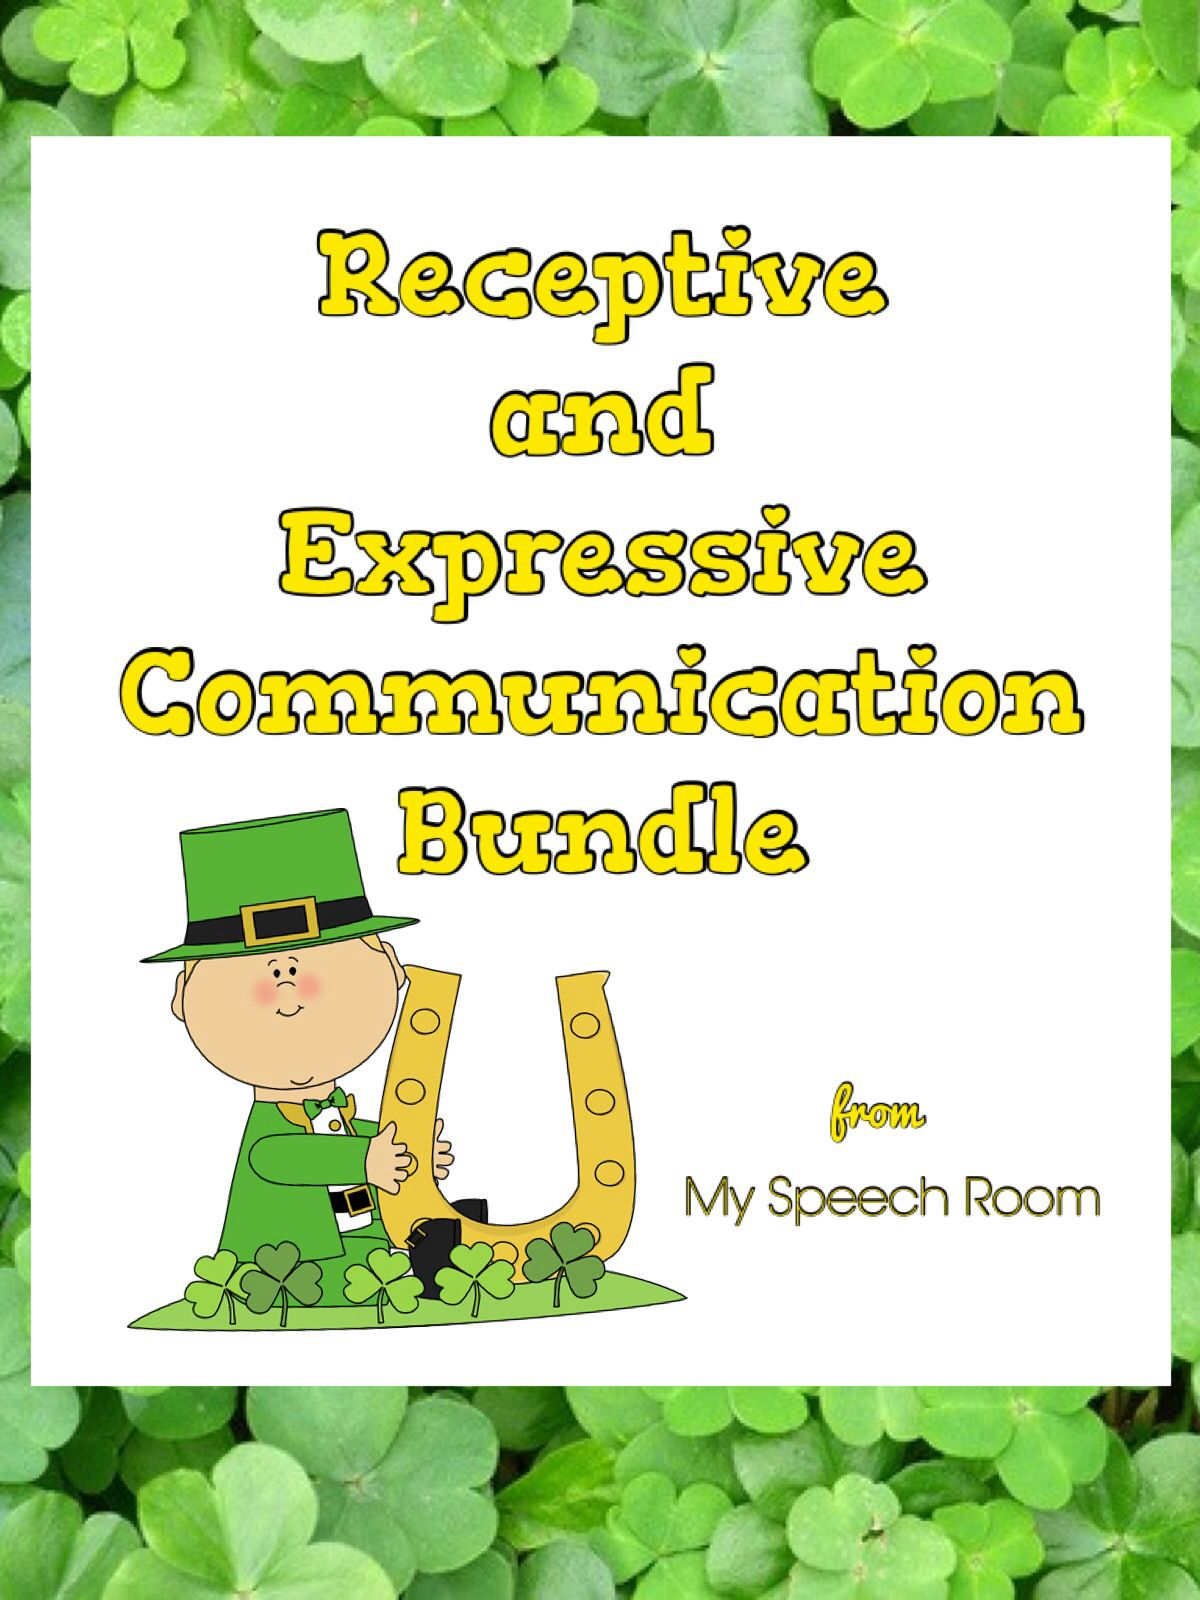 St Patrick S Day Speech And Language Therapy Activity